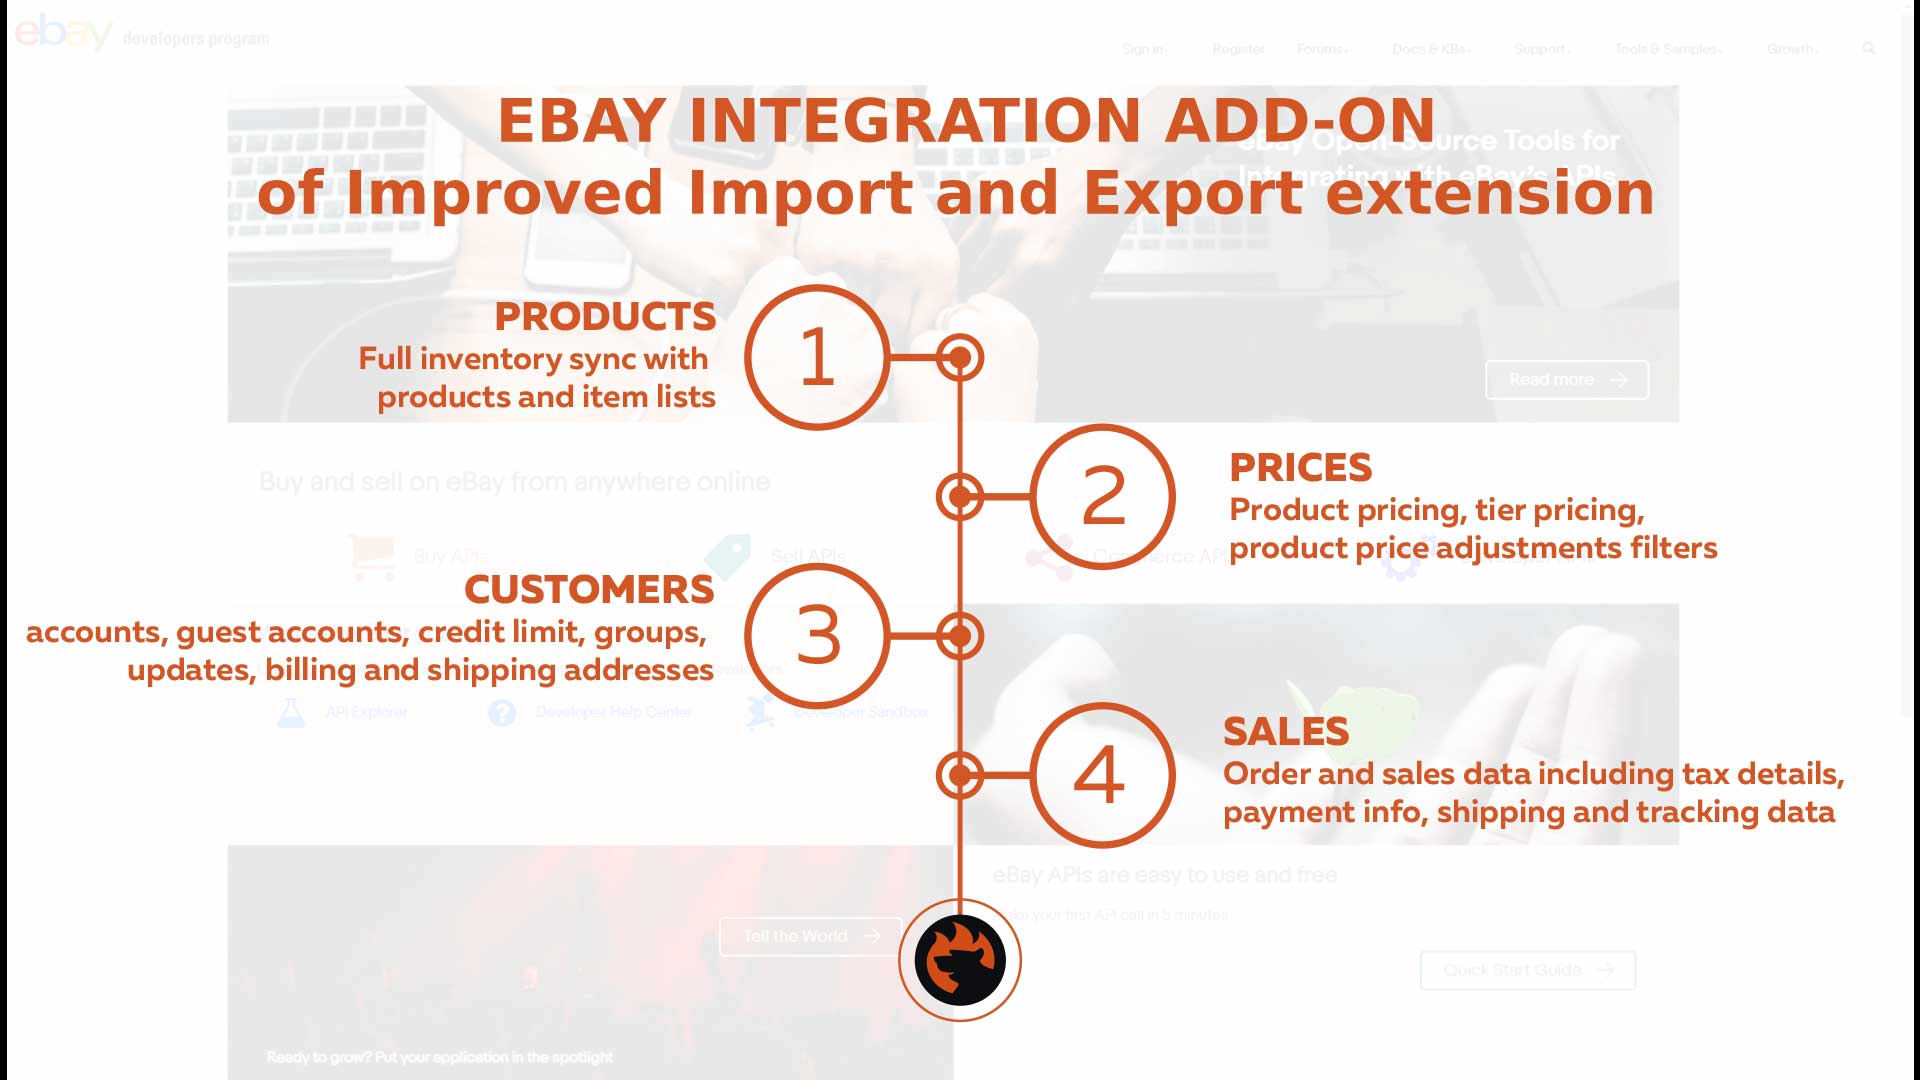 Magento 2 integration with Ebay add-on connector